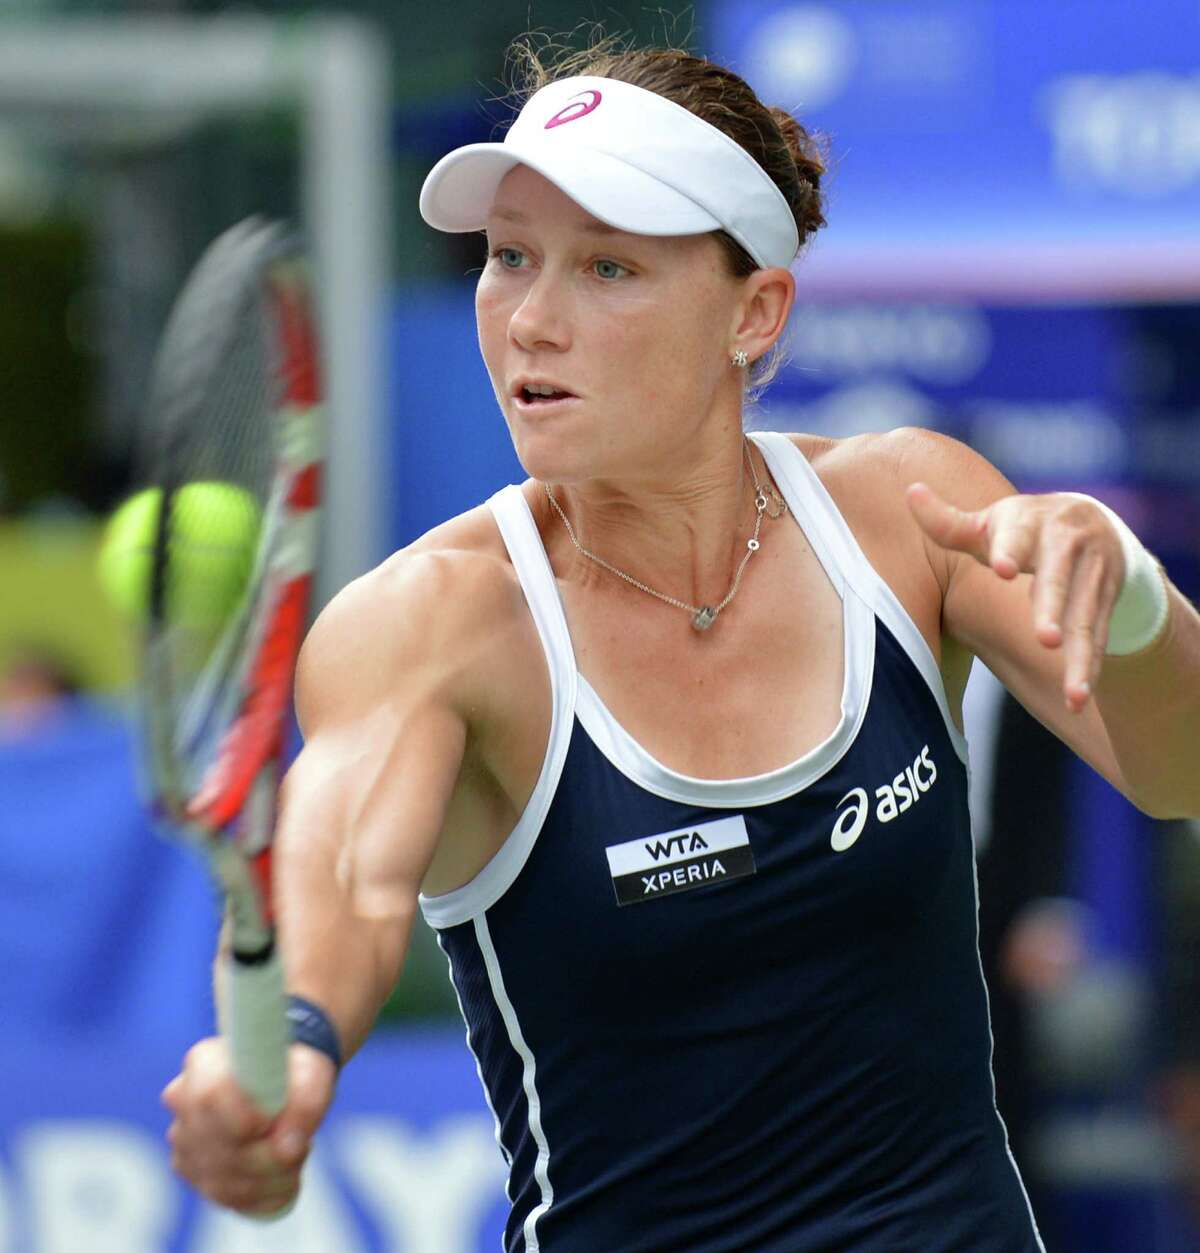 Samantha Stosur of Australia hits a return against Maria Sharapova of Russia during their women's singles quarter-final match at the Pan Pacific Open tennis tournament in Tokyo on September 27, 2012. AFP PHOTO / KAZUHIRO NOGIKAZUHIRO NOGI/AFP/GettyImages